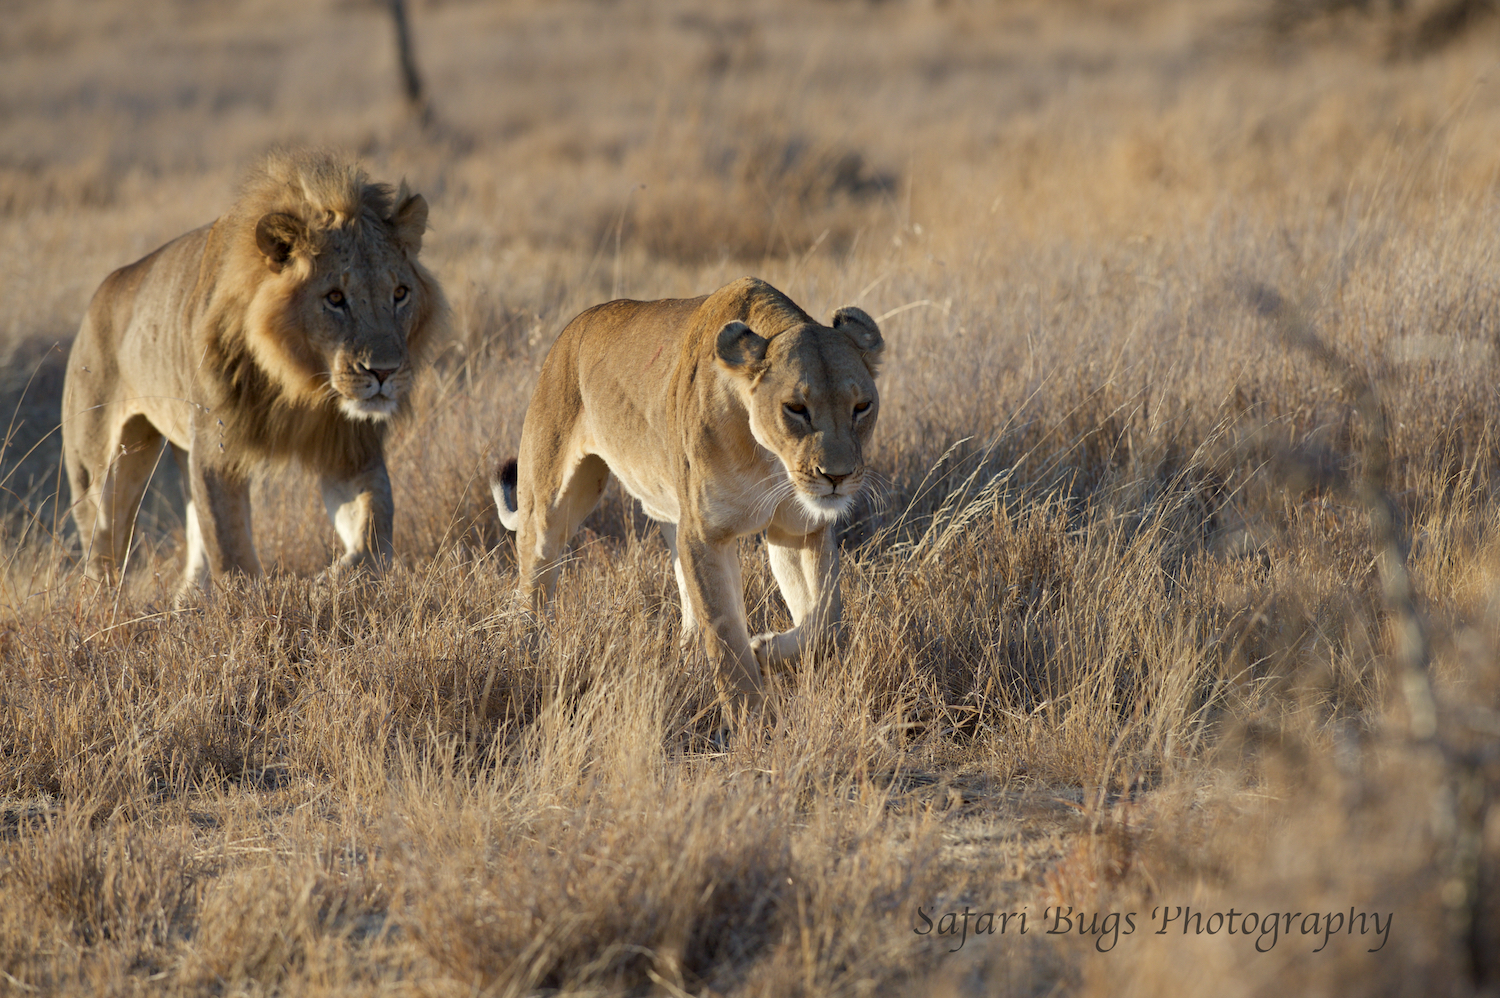 Lion Courting Lioness